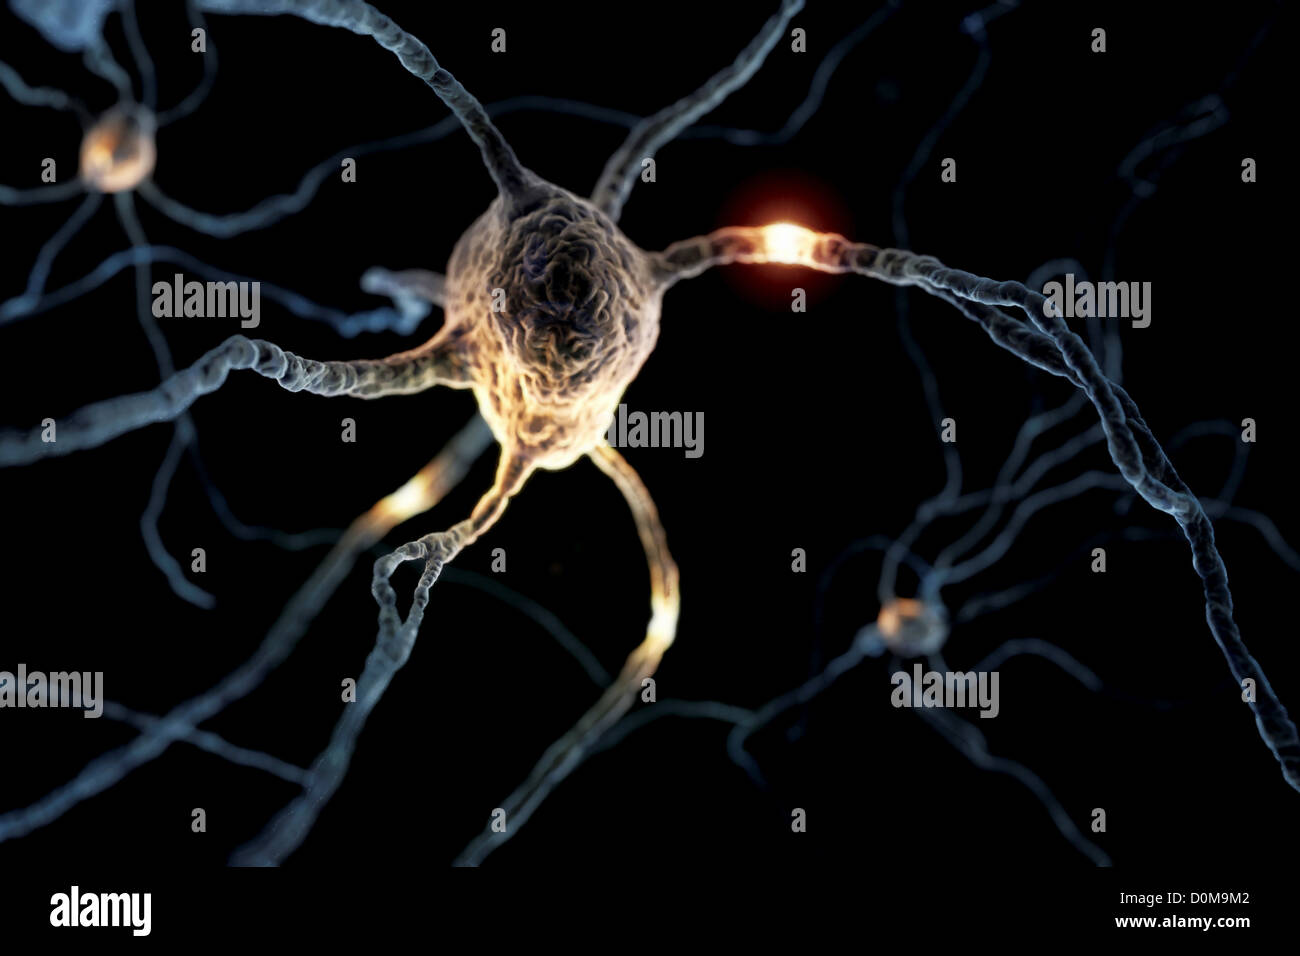 Microscopic styled visualization of neurons. - Stock Image